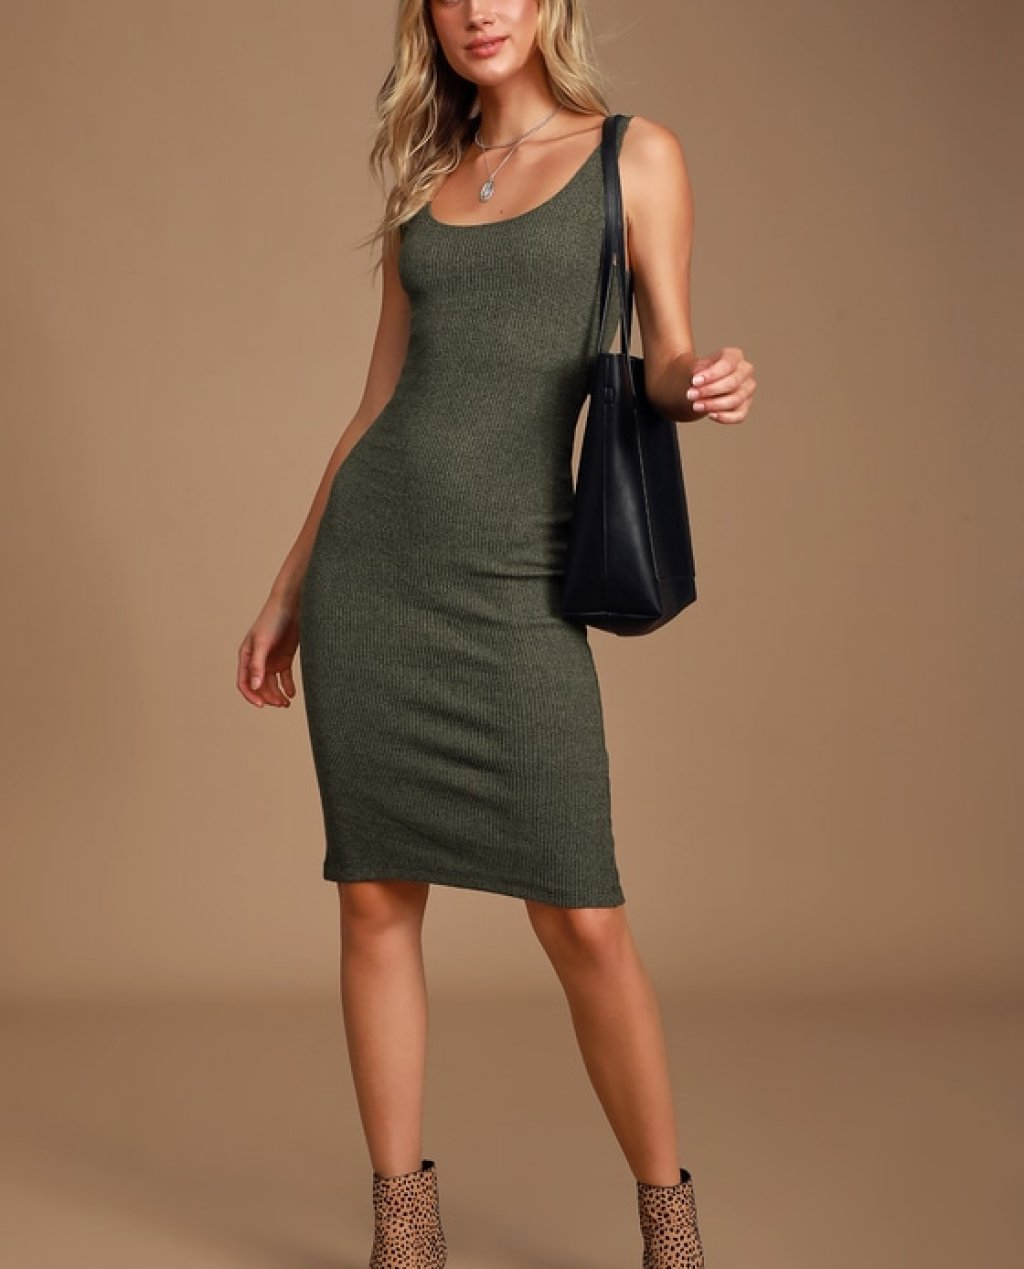 Gotta Flaunt It Heather Olive Green Ribbed Bodycon Midi Dress